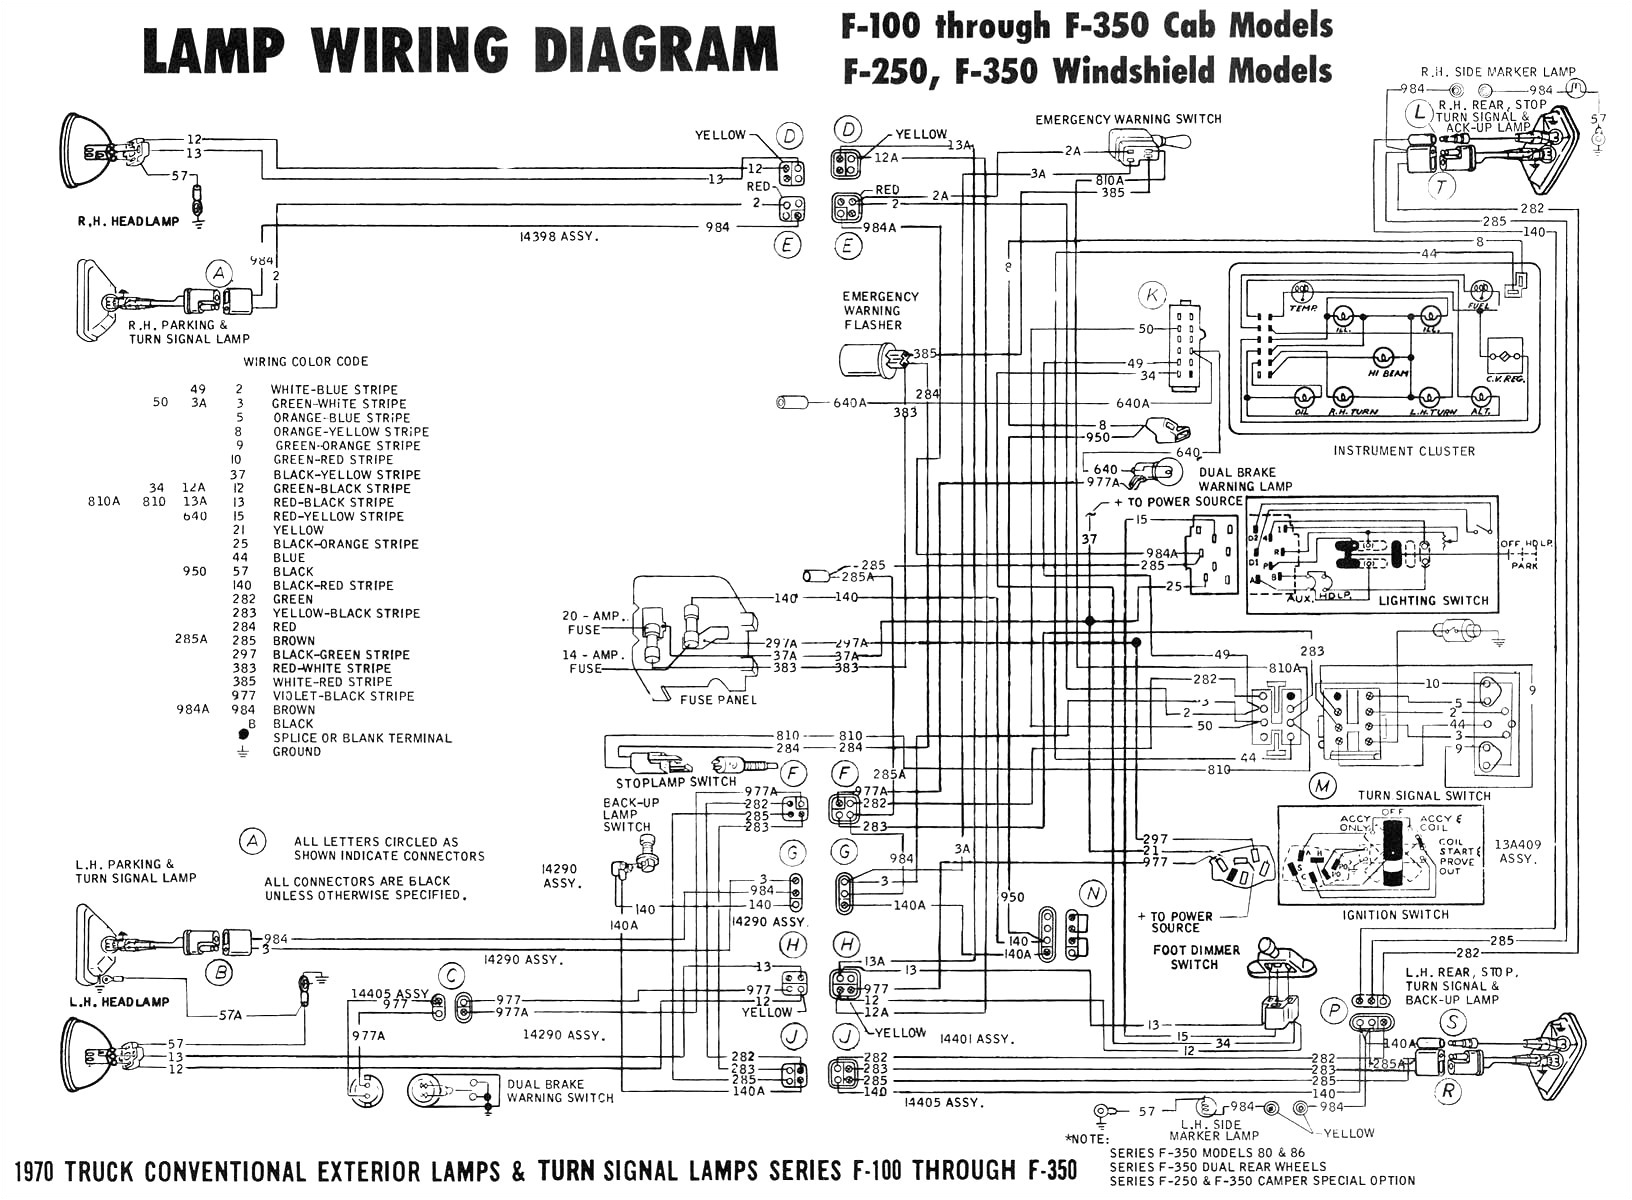 m151a1 wiring diagram wiring diagram m151a1 wiring diagram